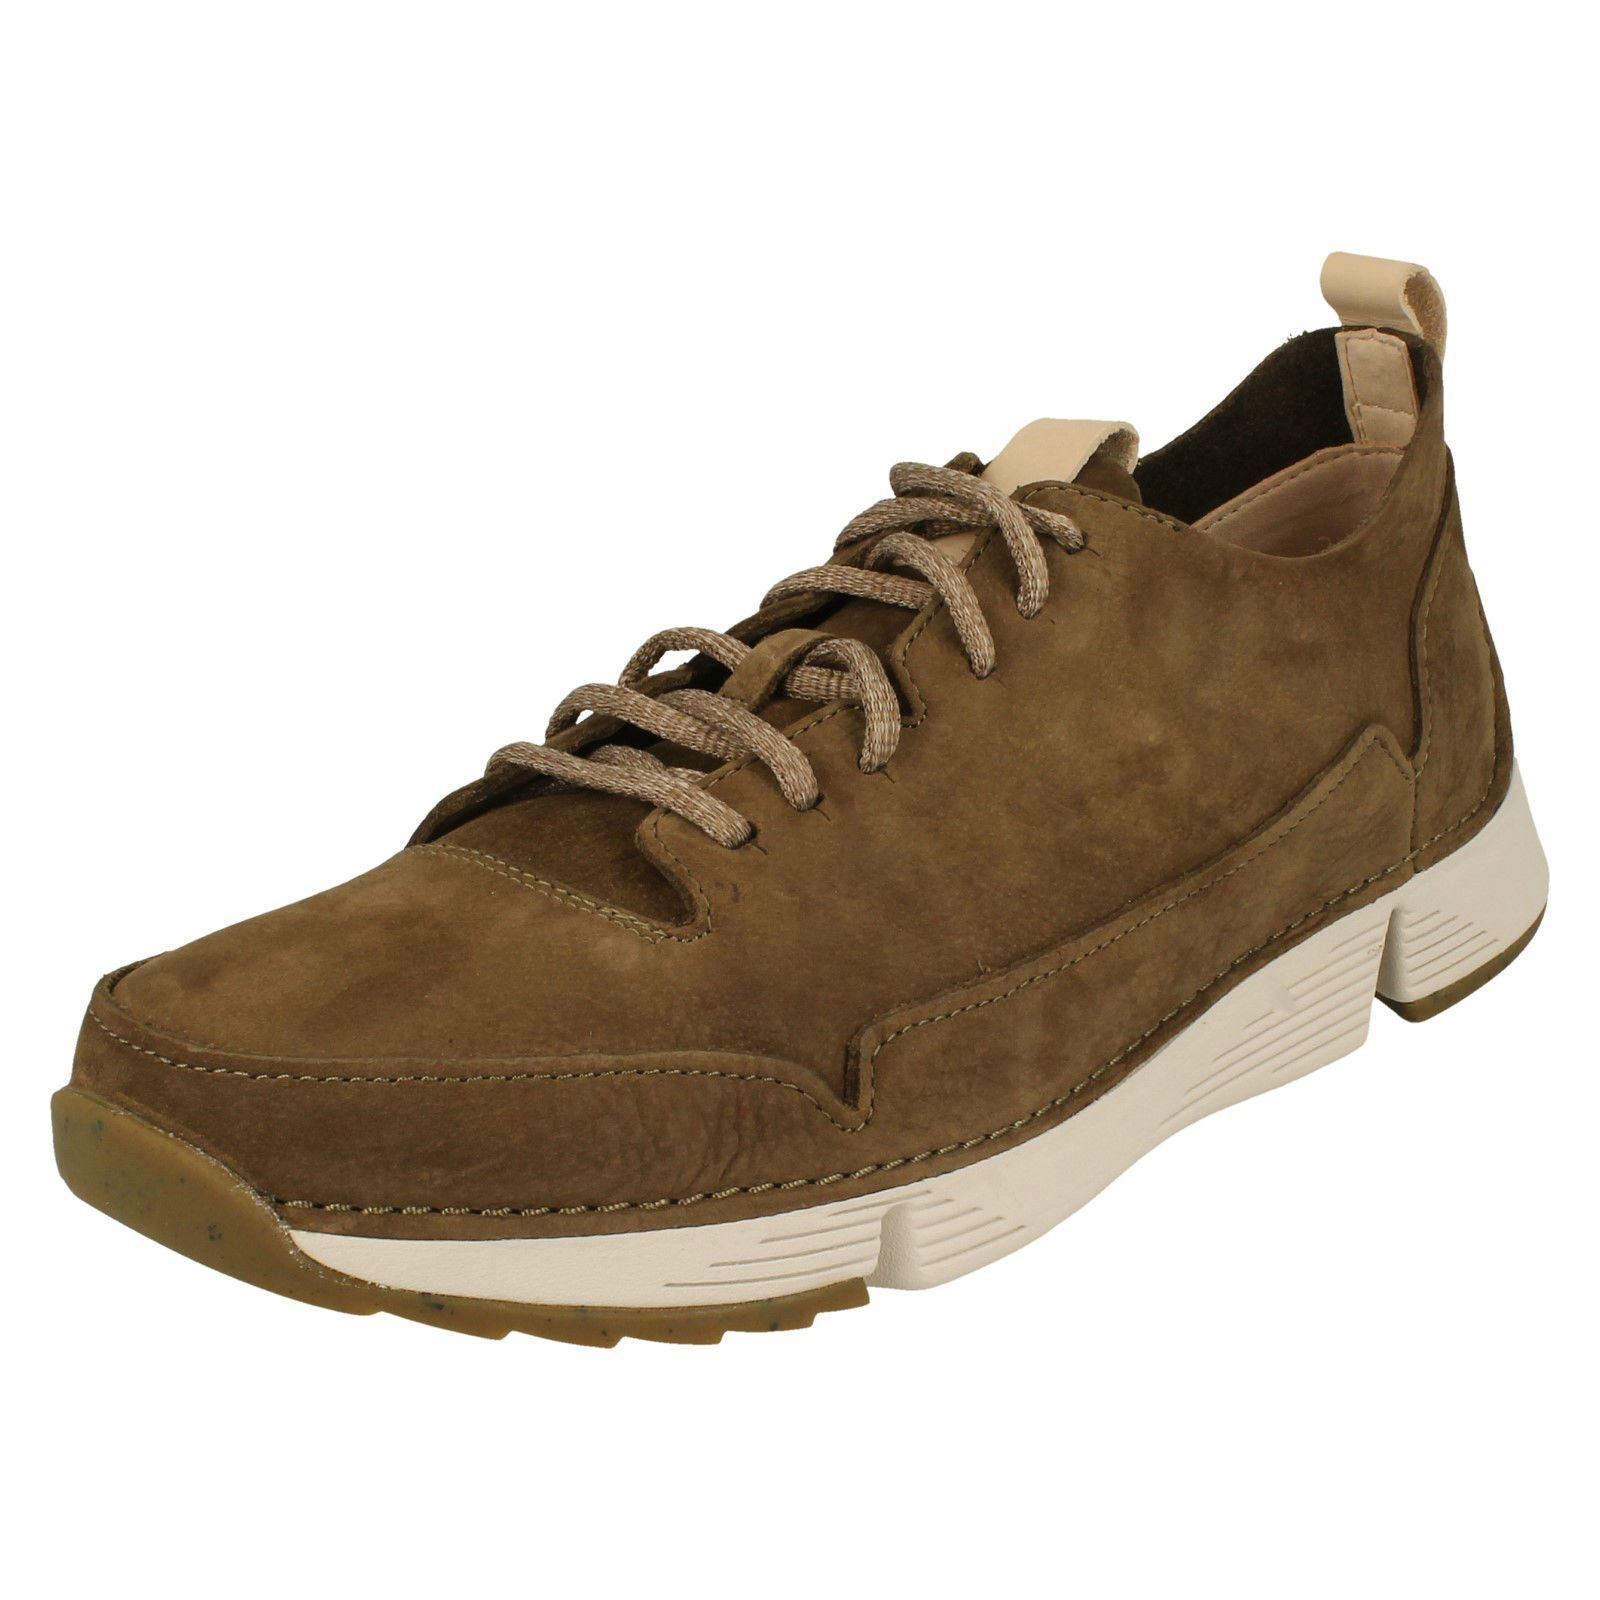 Clarks Mens Casual Lace Up Shoes Tri Spark